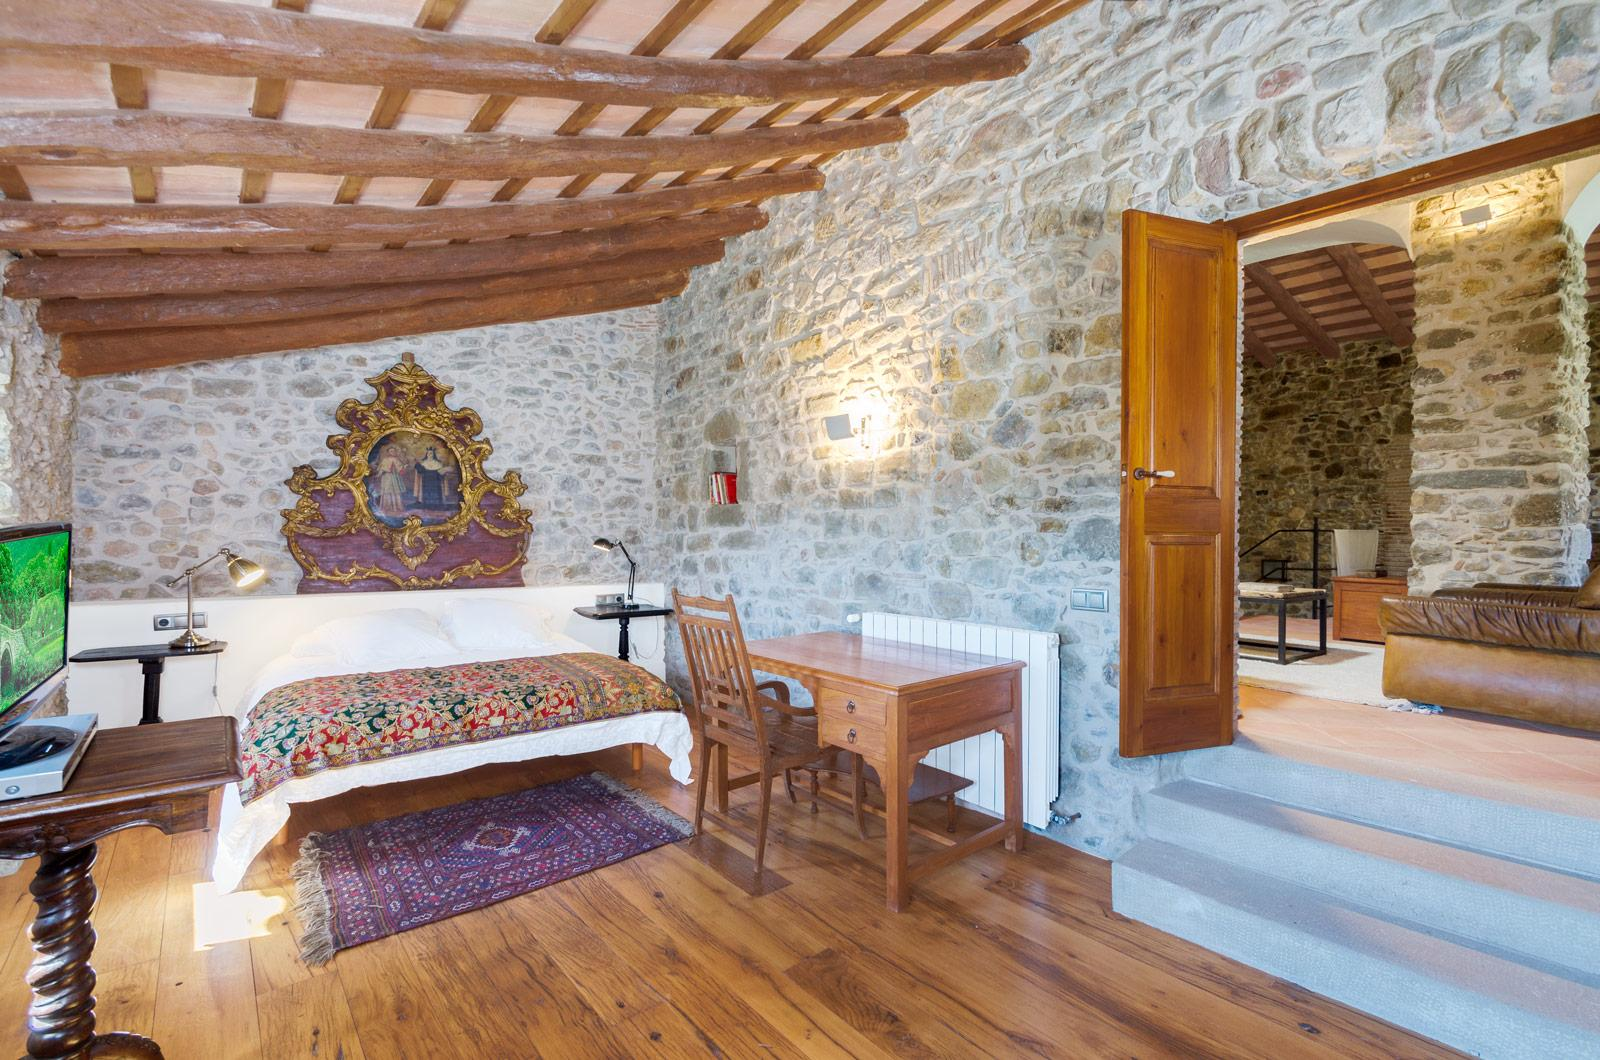 15. Villa for sale in Girona - Traditional Masia, Catalonia country house, for sale in Girona